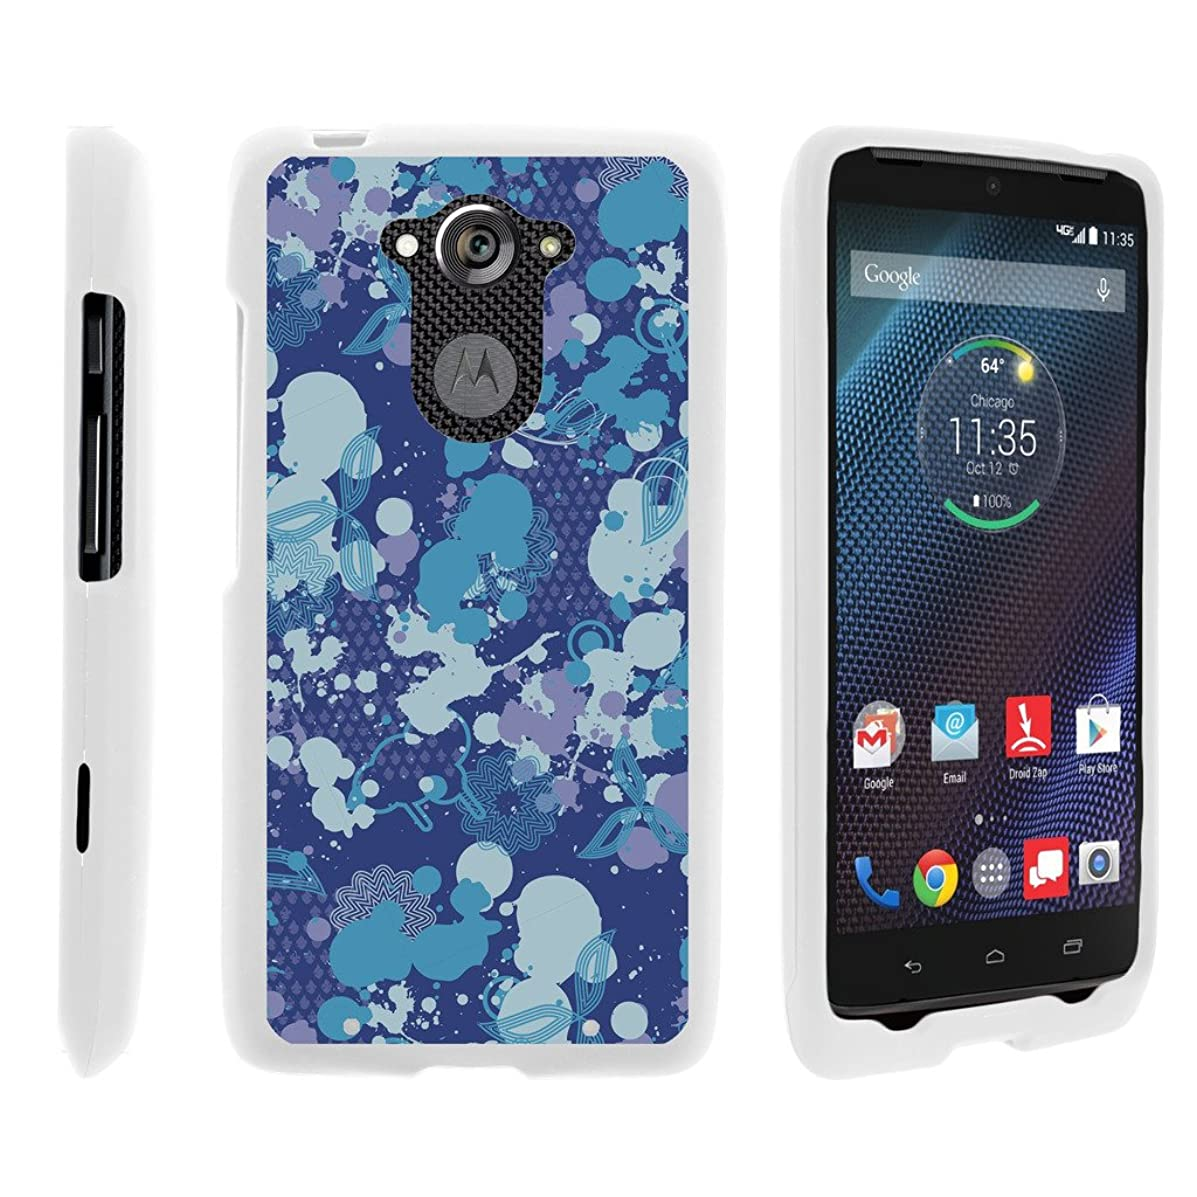 TurtleArmor | Motorola Droid Turbo Case | XT1254 | Moto Maxx Case [Slim Duo] Slim Ultra Fitted Compact Hard Cover Rubberized Coat Camouflage Case Design on White - Blue Midnight Print